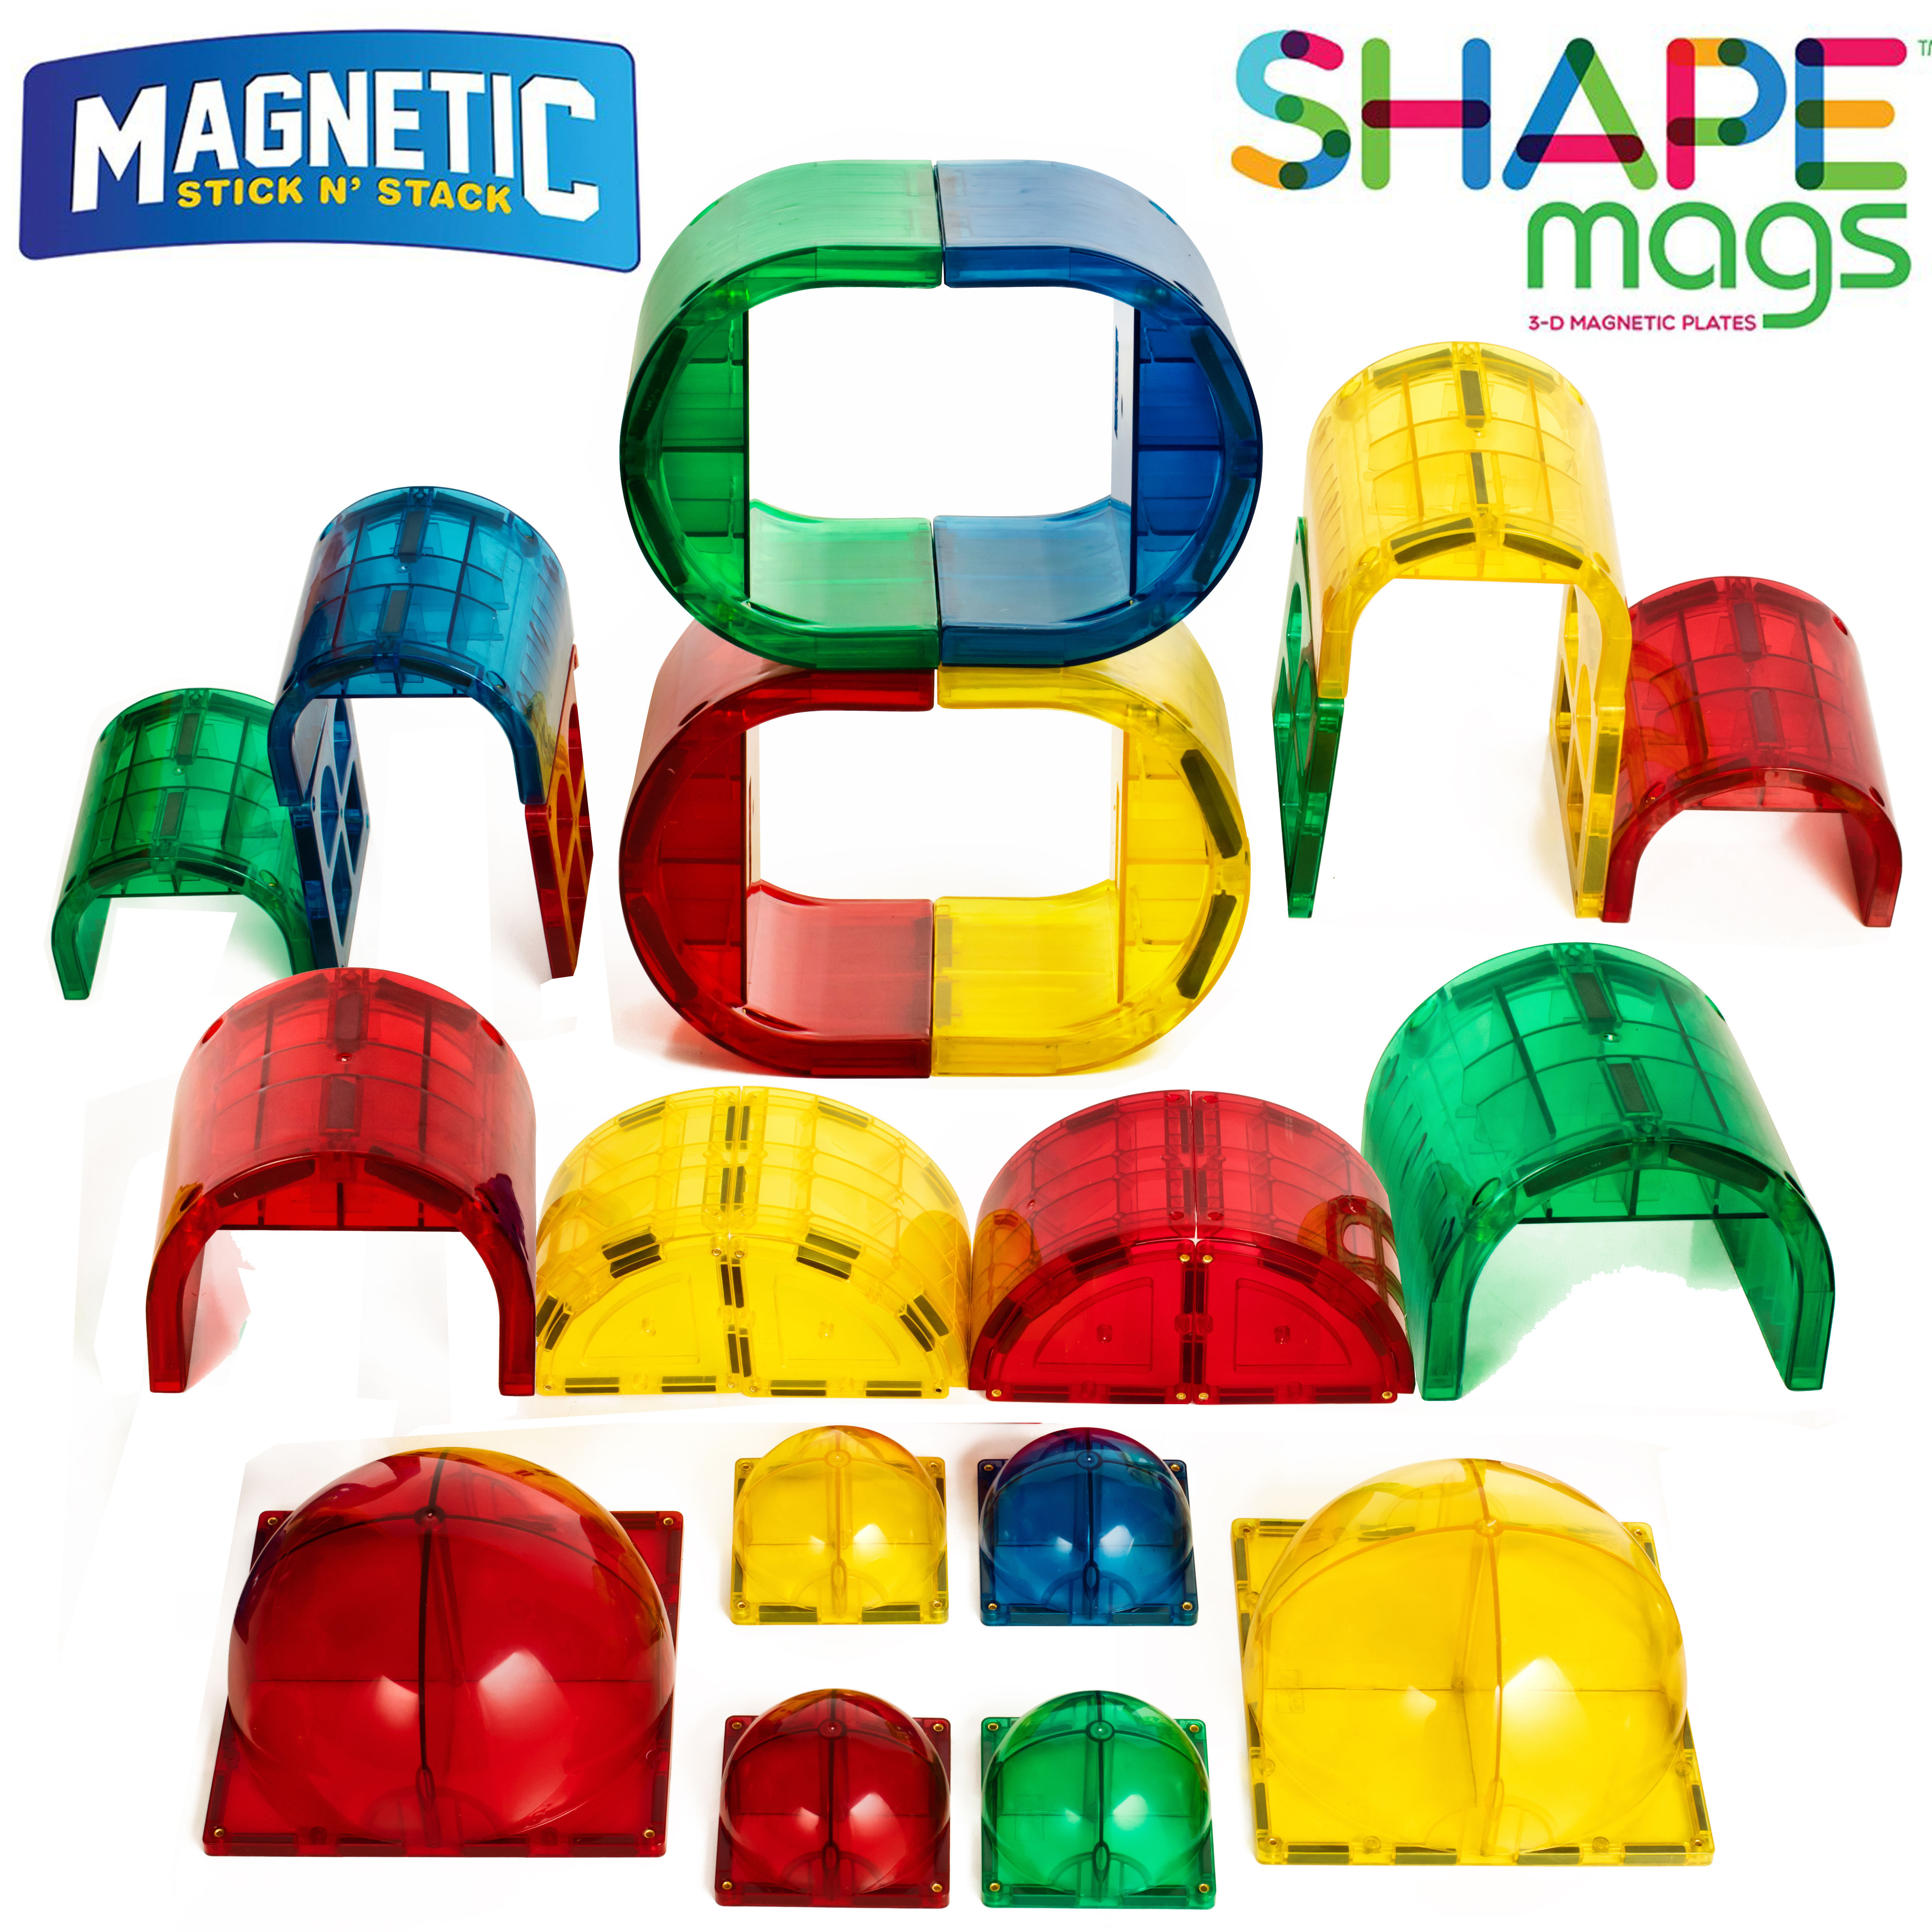 Shape Mags Magnetic 30 Piece Round Set. Includes 6X6 Domes, 3X3 Domes, Arches, Tunnels, and Arch Windows,... by Shape Mags